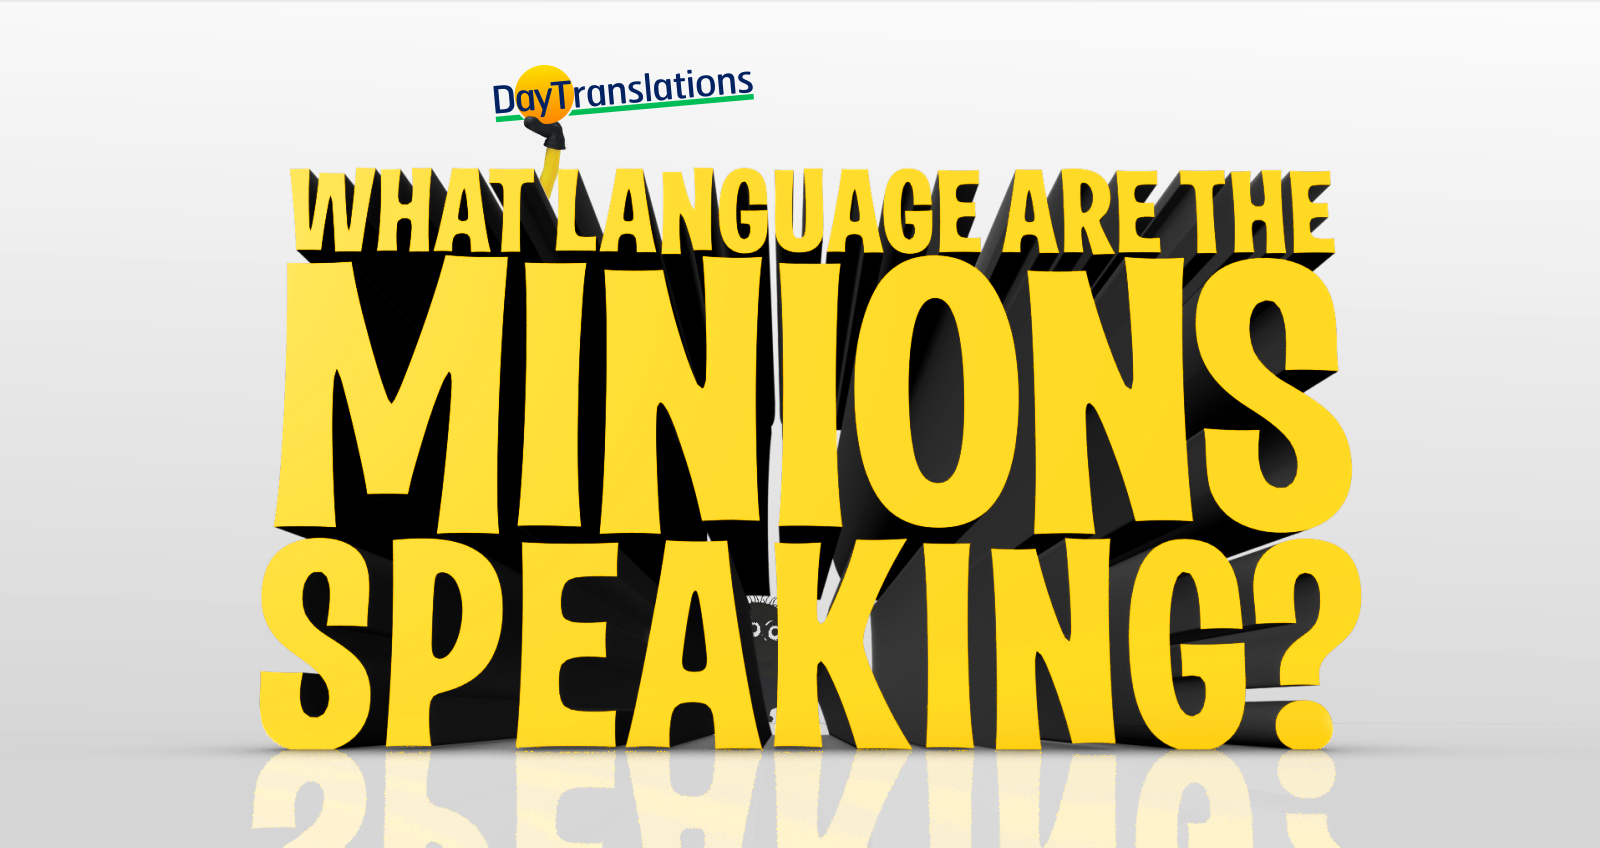 The Minions' language is a combination of French, Spanish, English… and food references